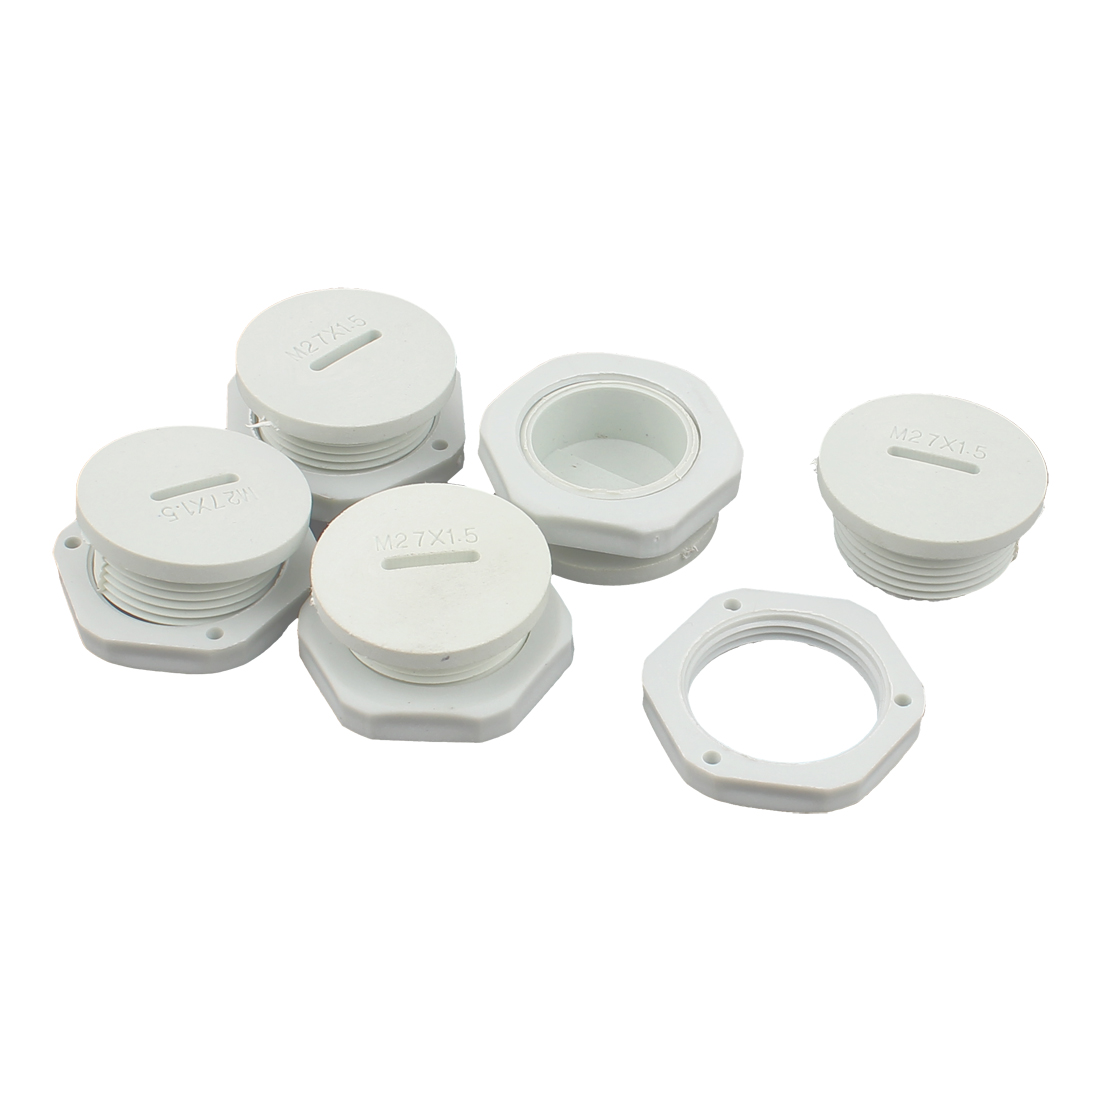 M16 x 1.5cm Plastic Round Head Pipe Adapter White 5Pcs